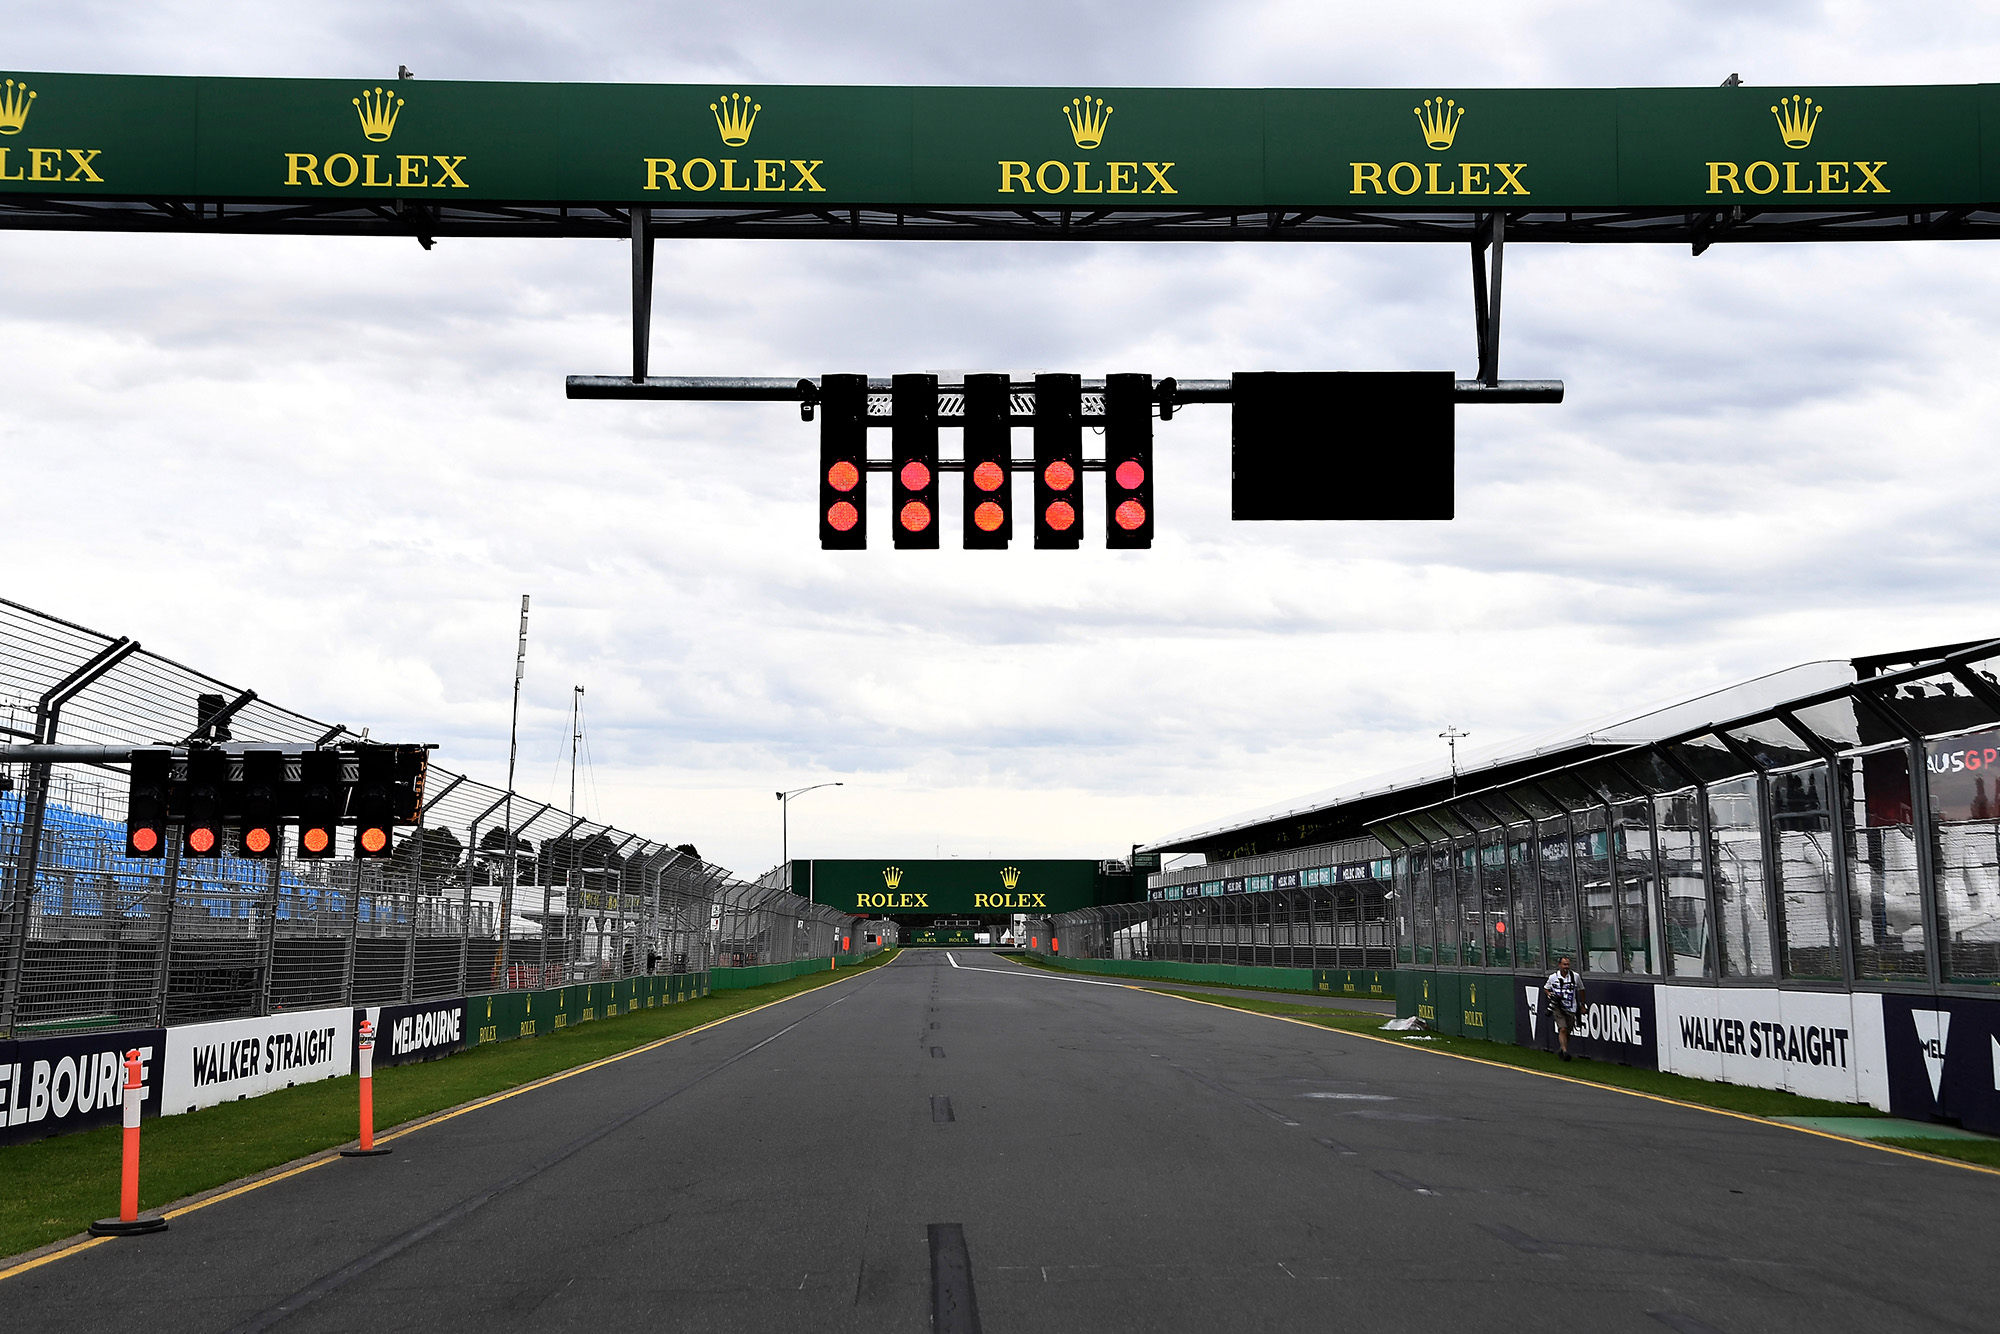 Inside the chaos: 34 hours of confusion at the cancelled Australian Grand Prix